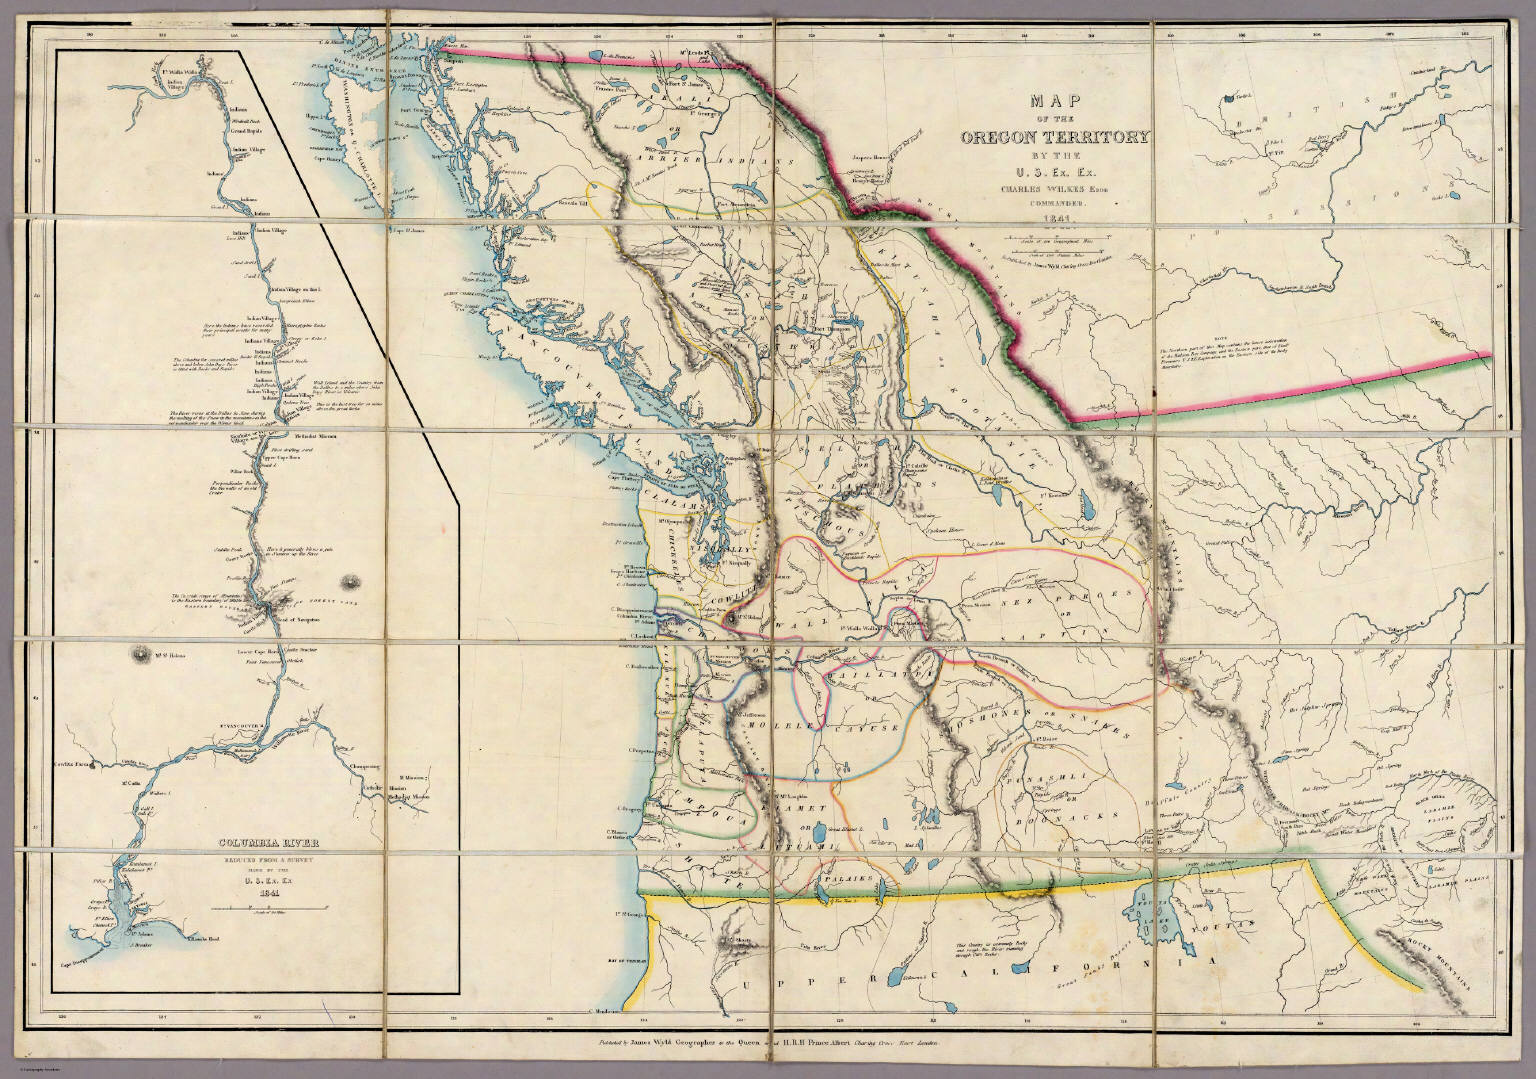 Maps Related To George Washington Bush - Map of orgeon